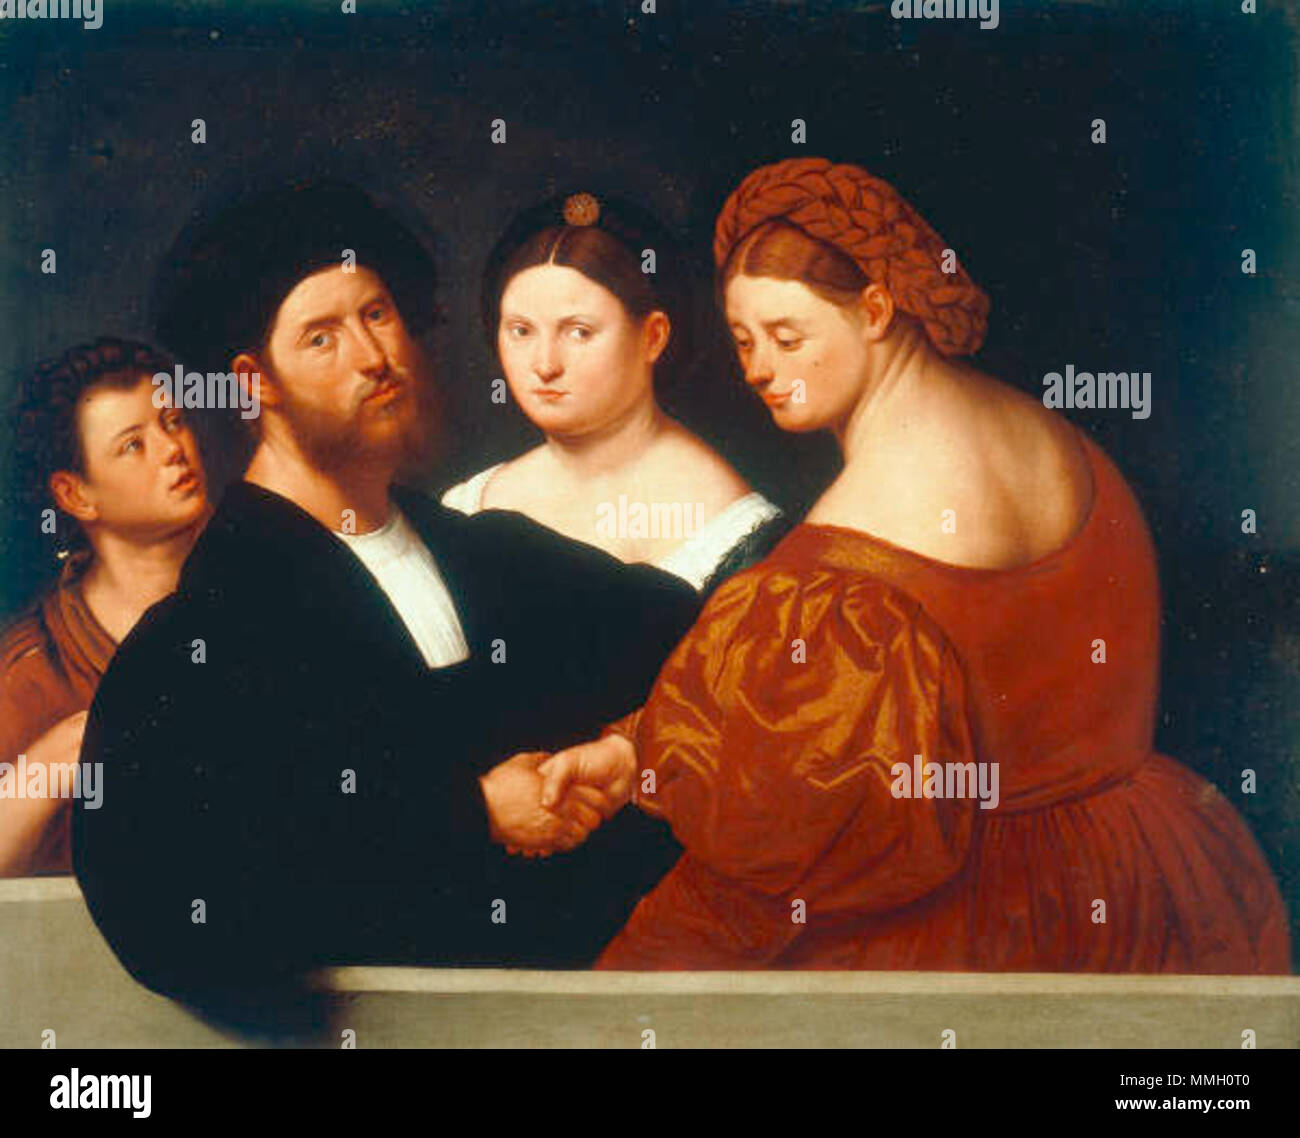 . Family portrait  . 16th century.   Bernardino Licinio  (1489–1565)     Description Italian painter  Date of birth/death circa 1489 circa 1565  Location of birth/death Poscante Venice  Work period Renaissance  Work location Venice  Authority control  : Q2629038 VIAF:?67533645 ULAN:?500018969 WGA:?LICINIO, Bernardino GND:?129005681 RKD:?49912 Bernardino Licinio 030 - Stock Image